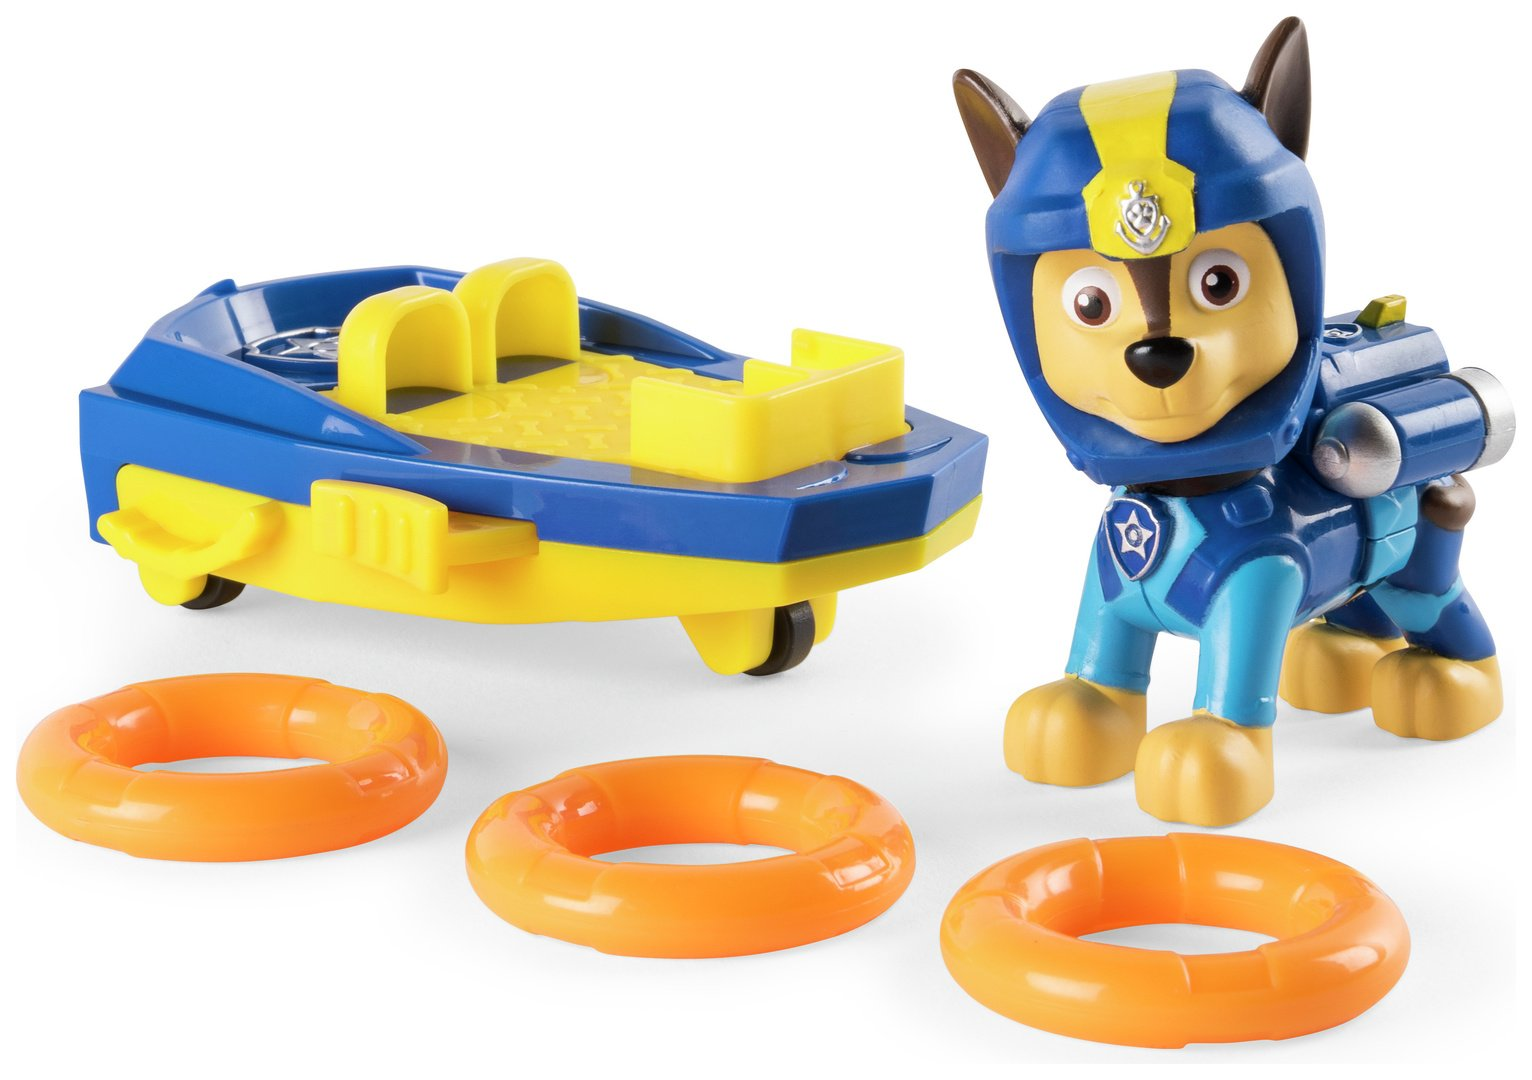 PAW Patrol Sea Patrol Surf Pups Assortment